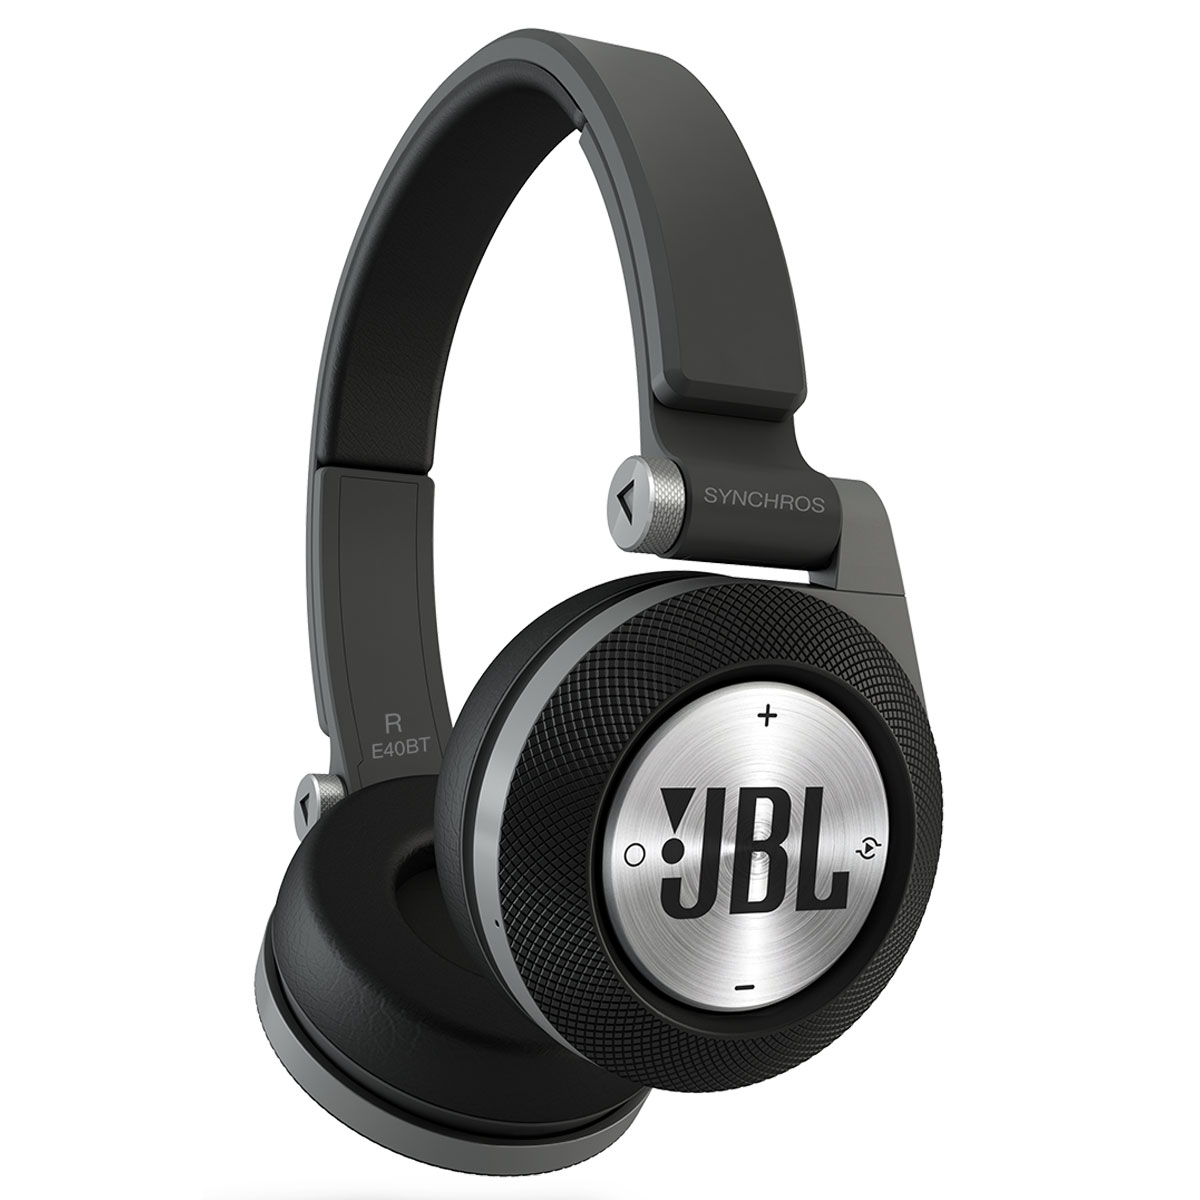 jbl e40bt noir casque jbl sur ldlc. Black Bedroom Furniture Sets. Home Design Ideas